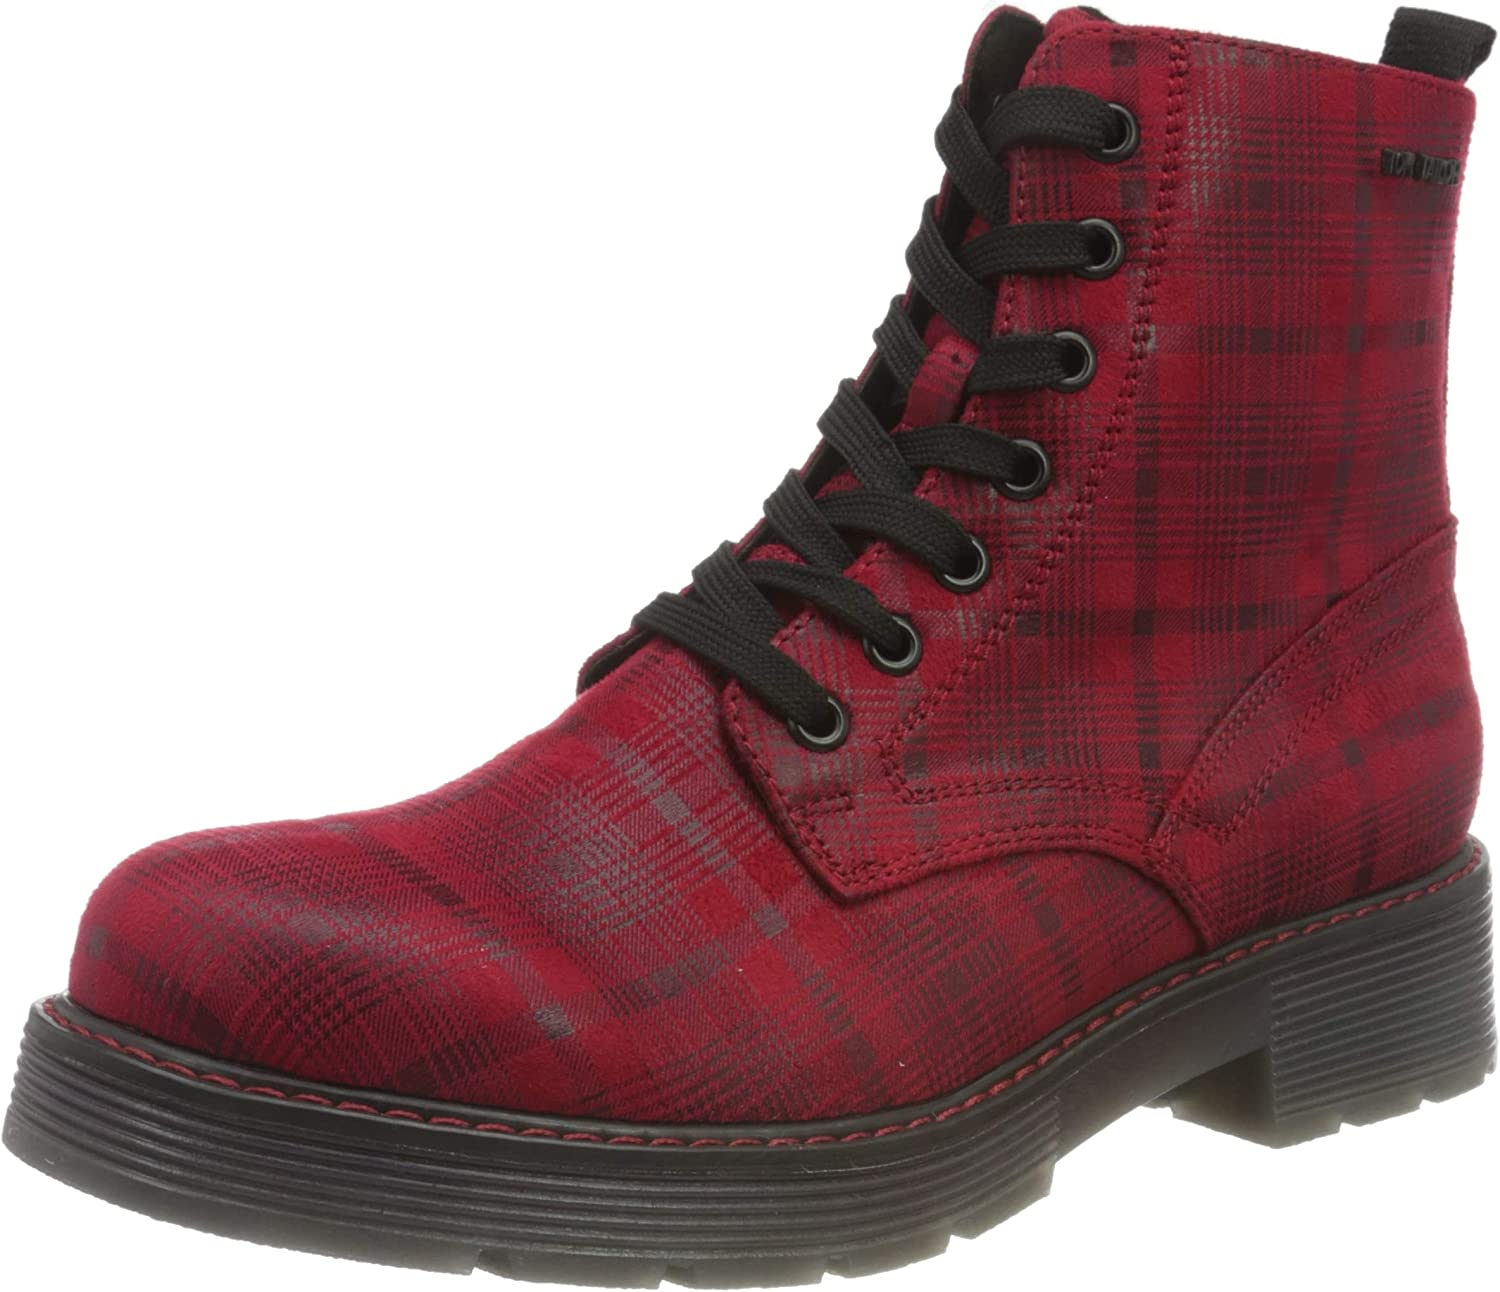 TOM TAILOR Women's 9093509 Mid Calf Boot, Red, 7.5 us